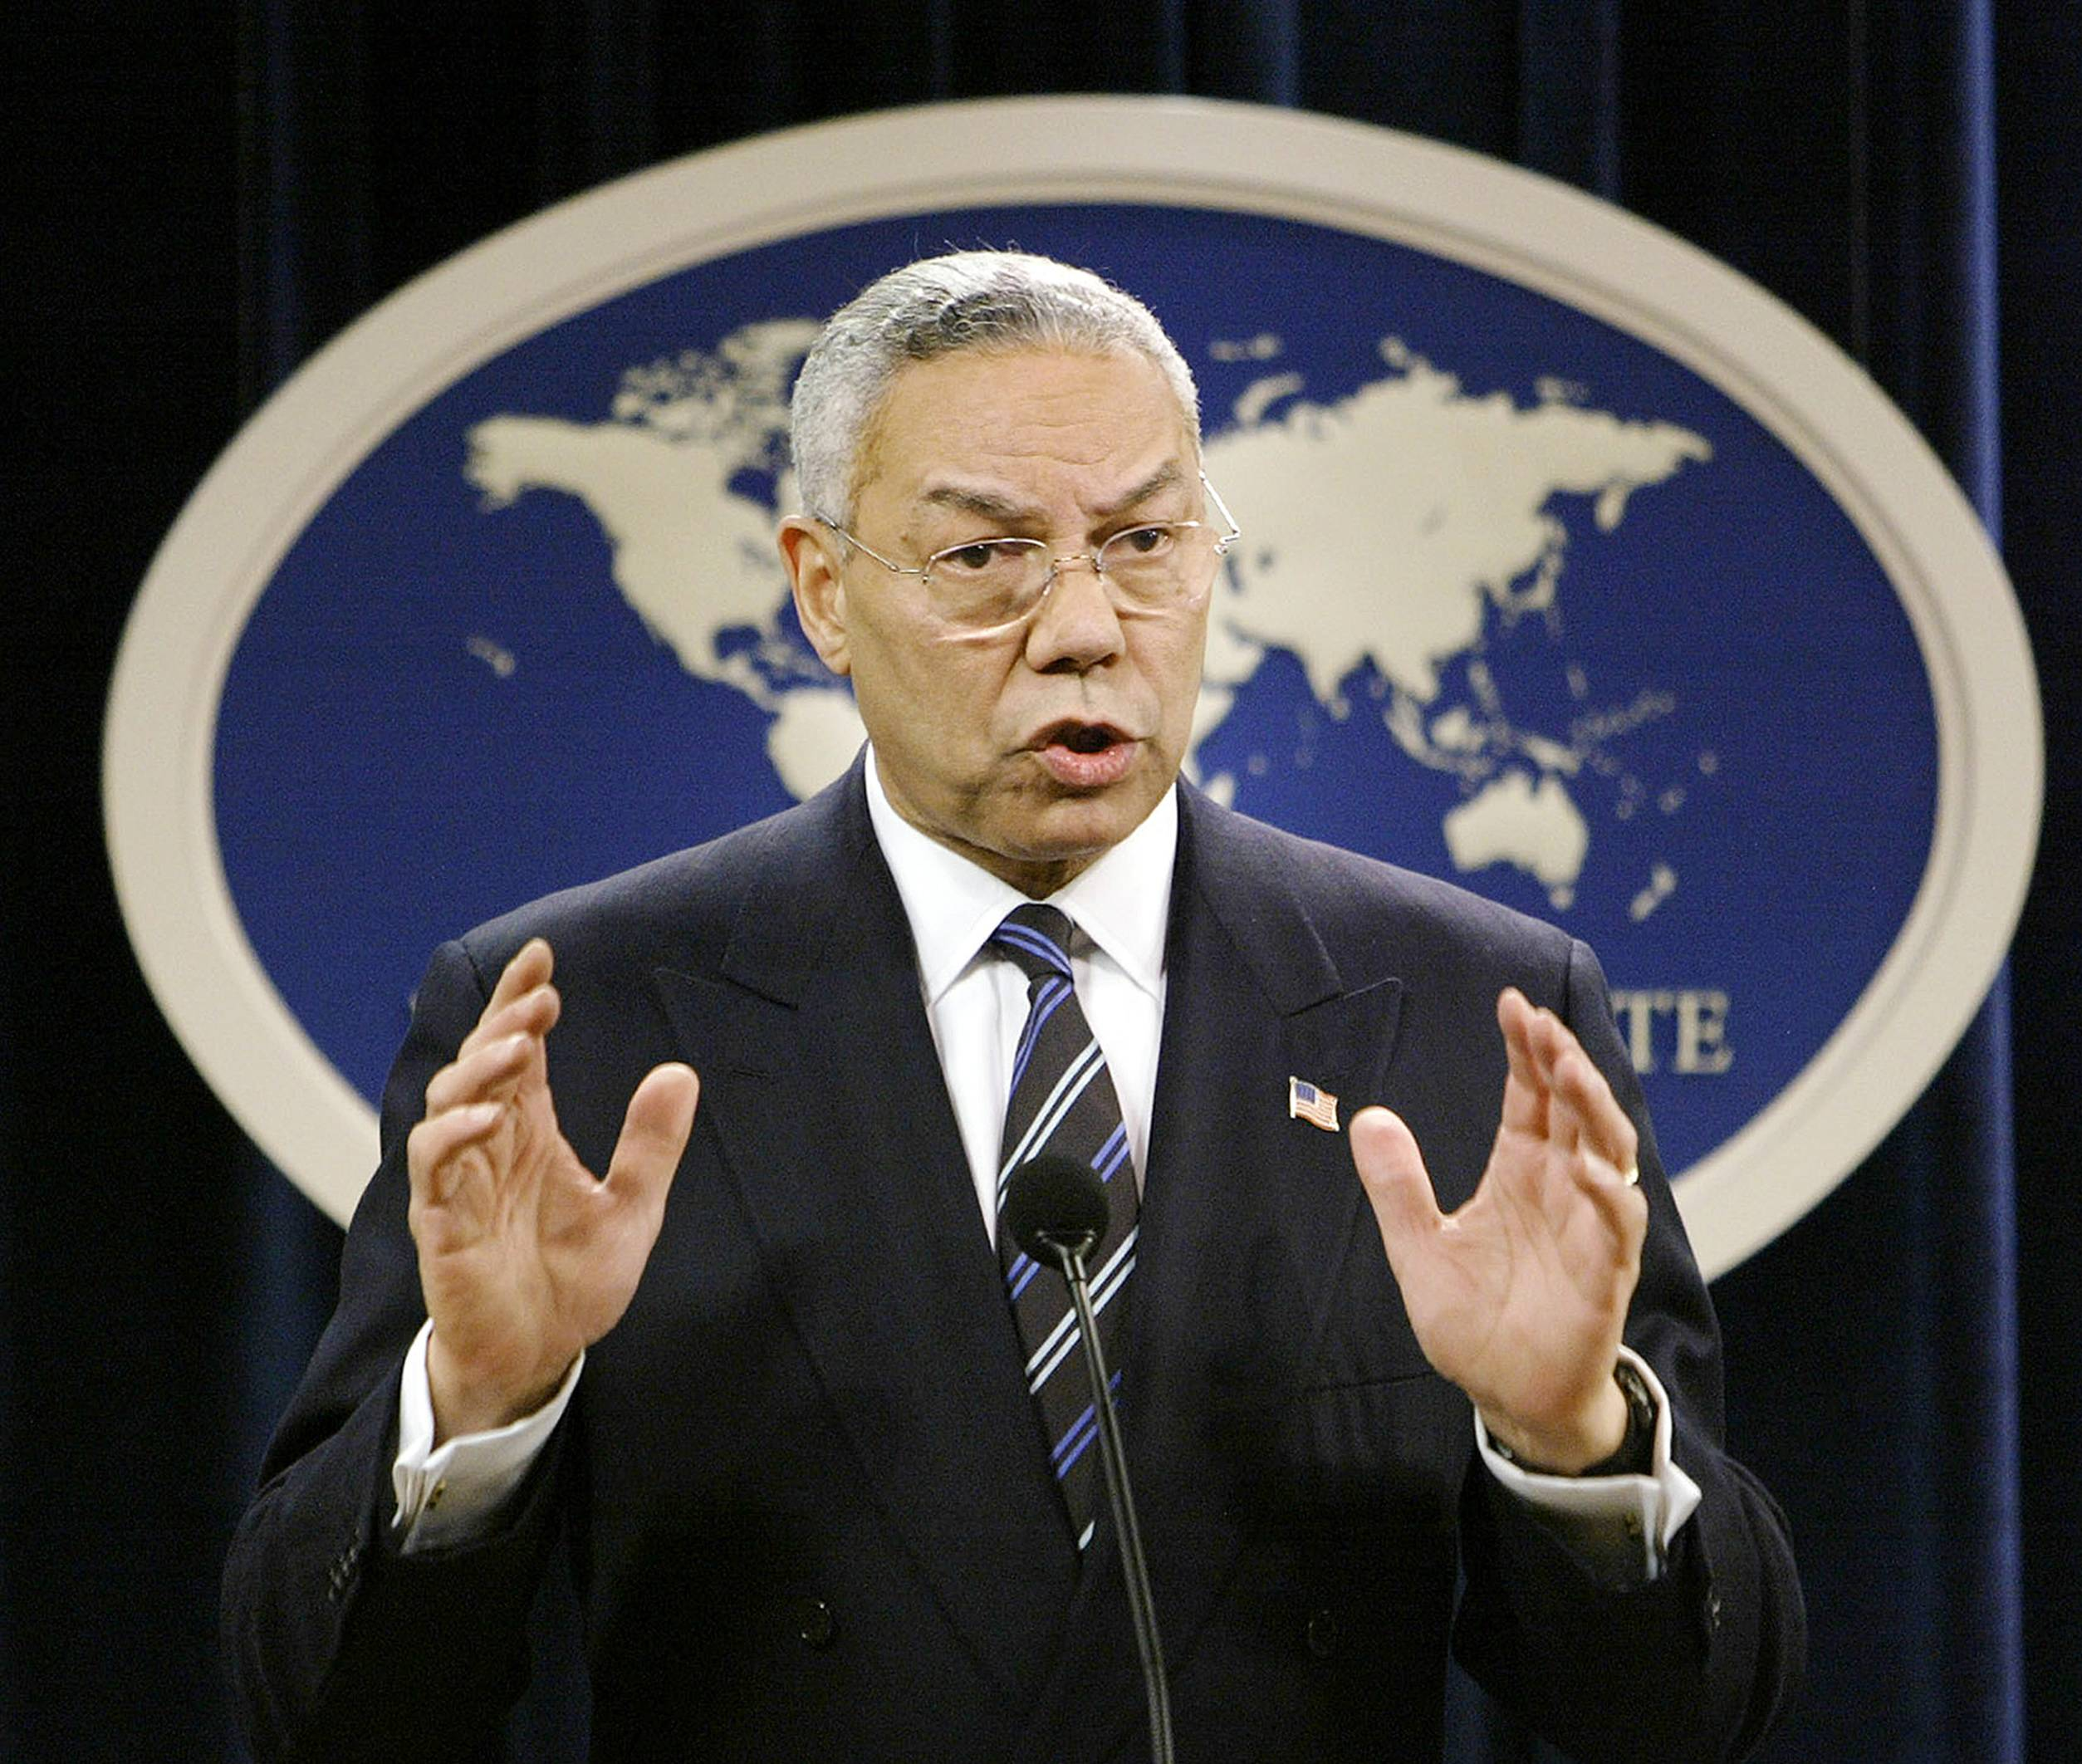 Then-Secretary of State Colin Powell. A document circulating among White House staff says a Senate report on the CIA's interrogation and detention practices after the 9/11 attacks concludes that the agency initially kept Powell and some U.S. ambassadors in the dark about harsh techniques and secret prisons.